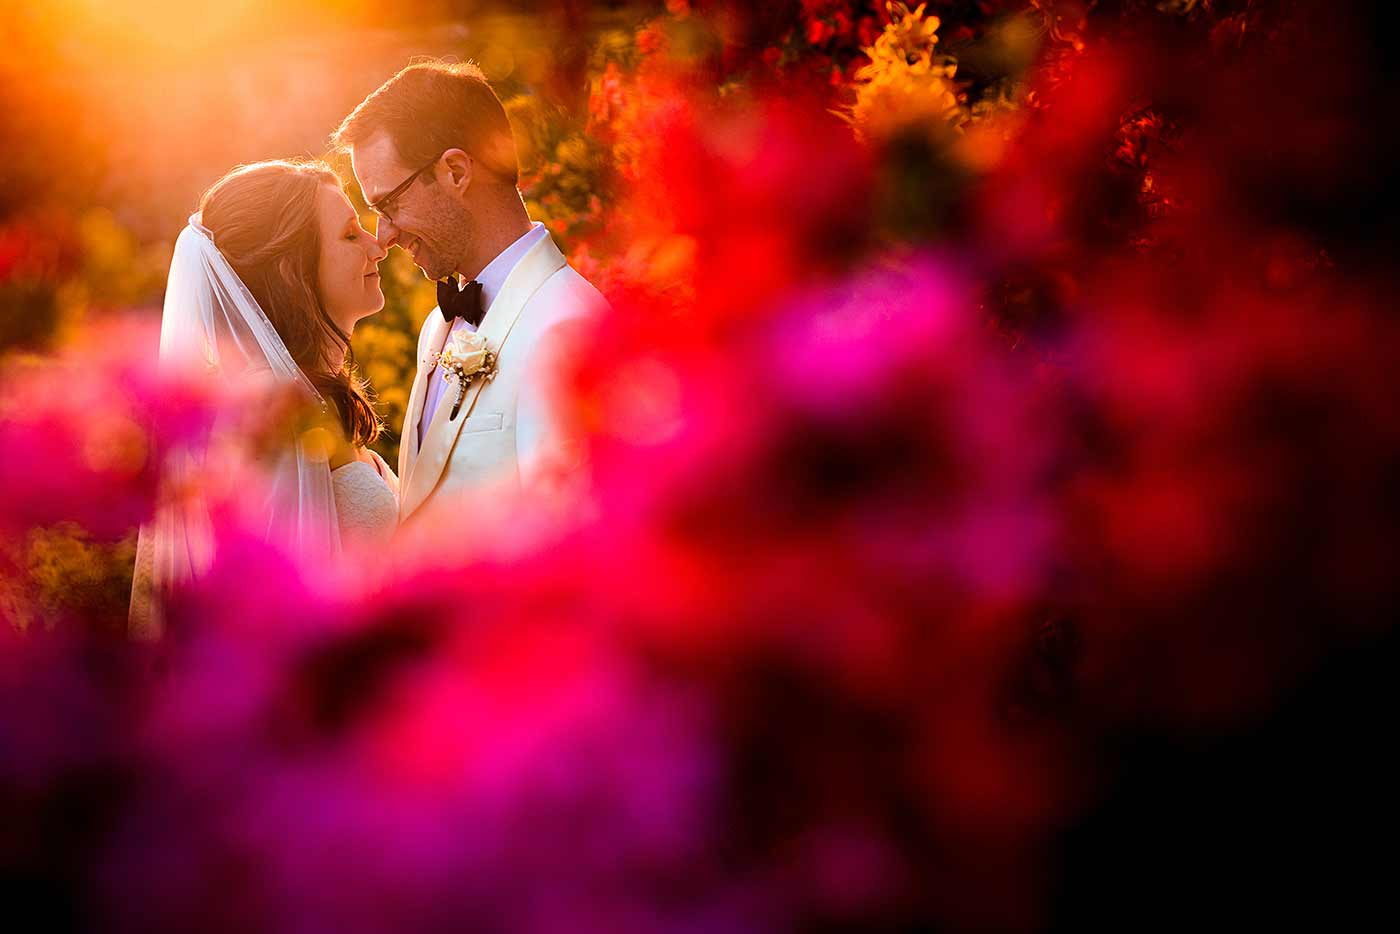 creative bride and groom portrait taken at sunset